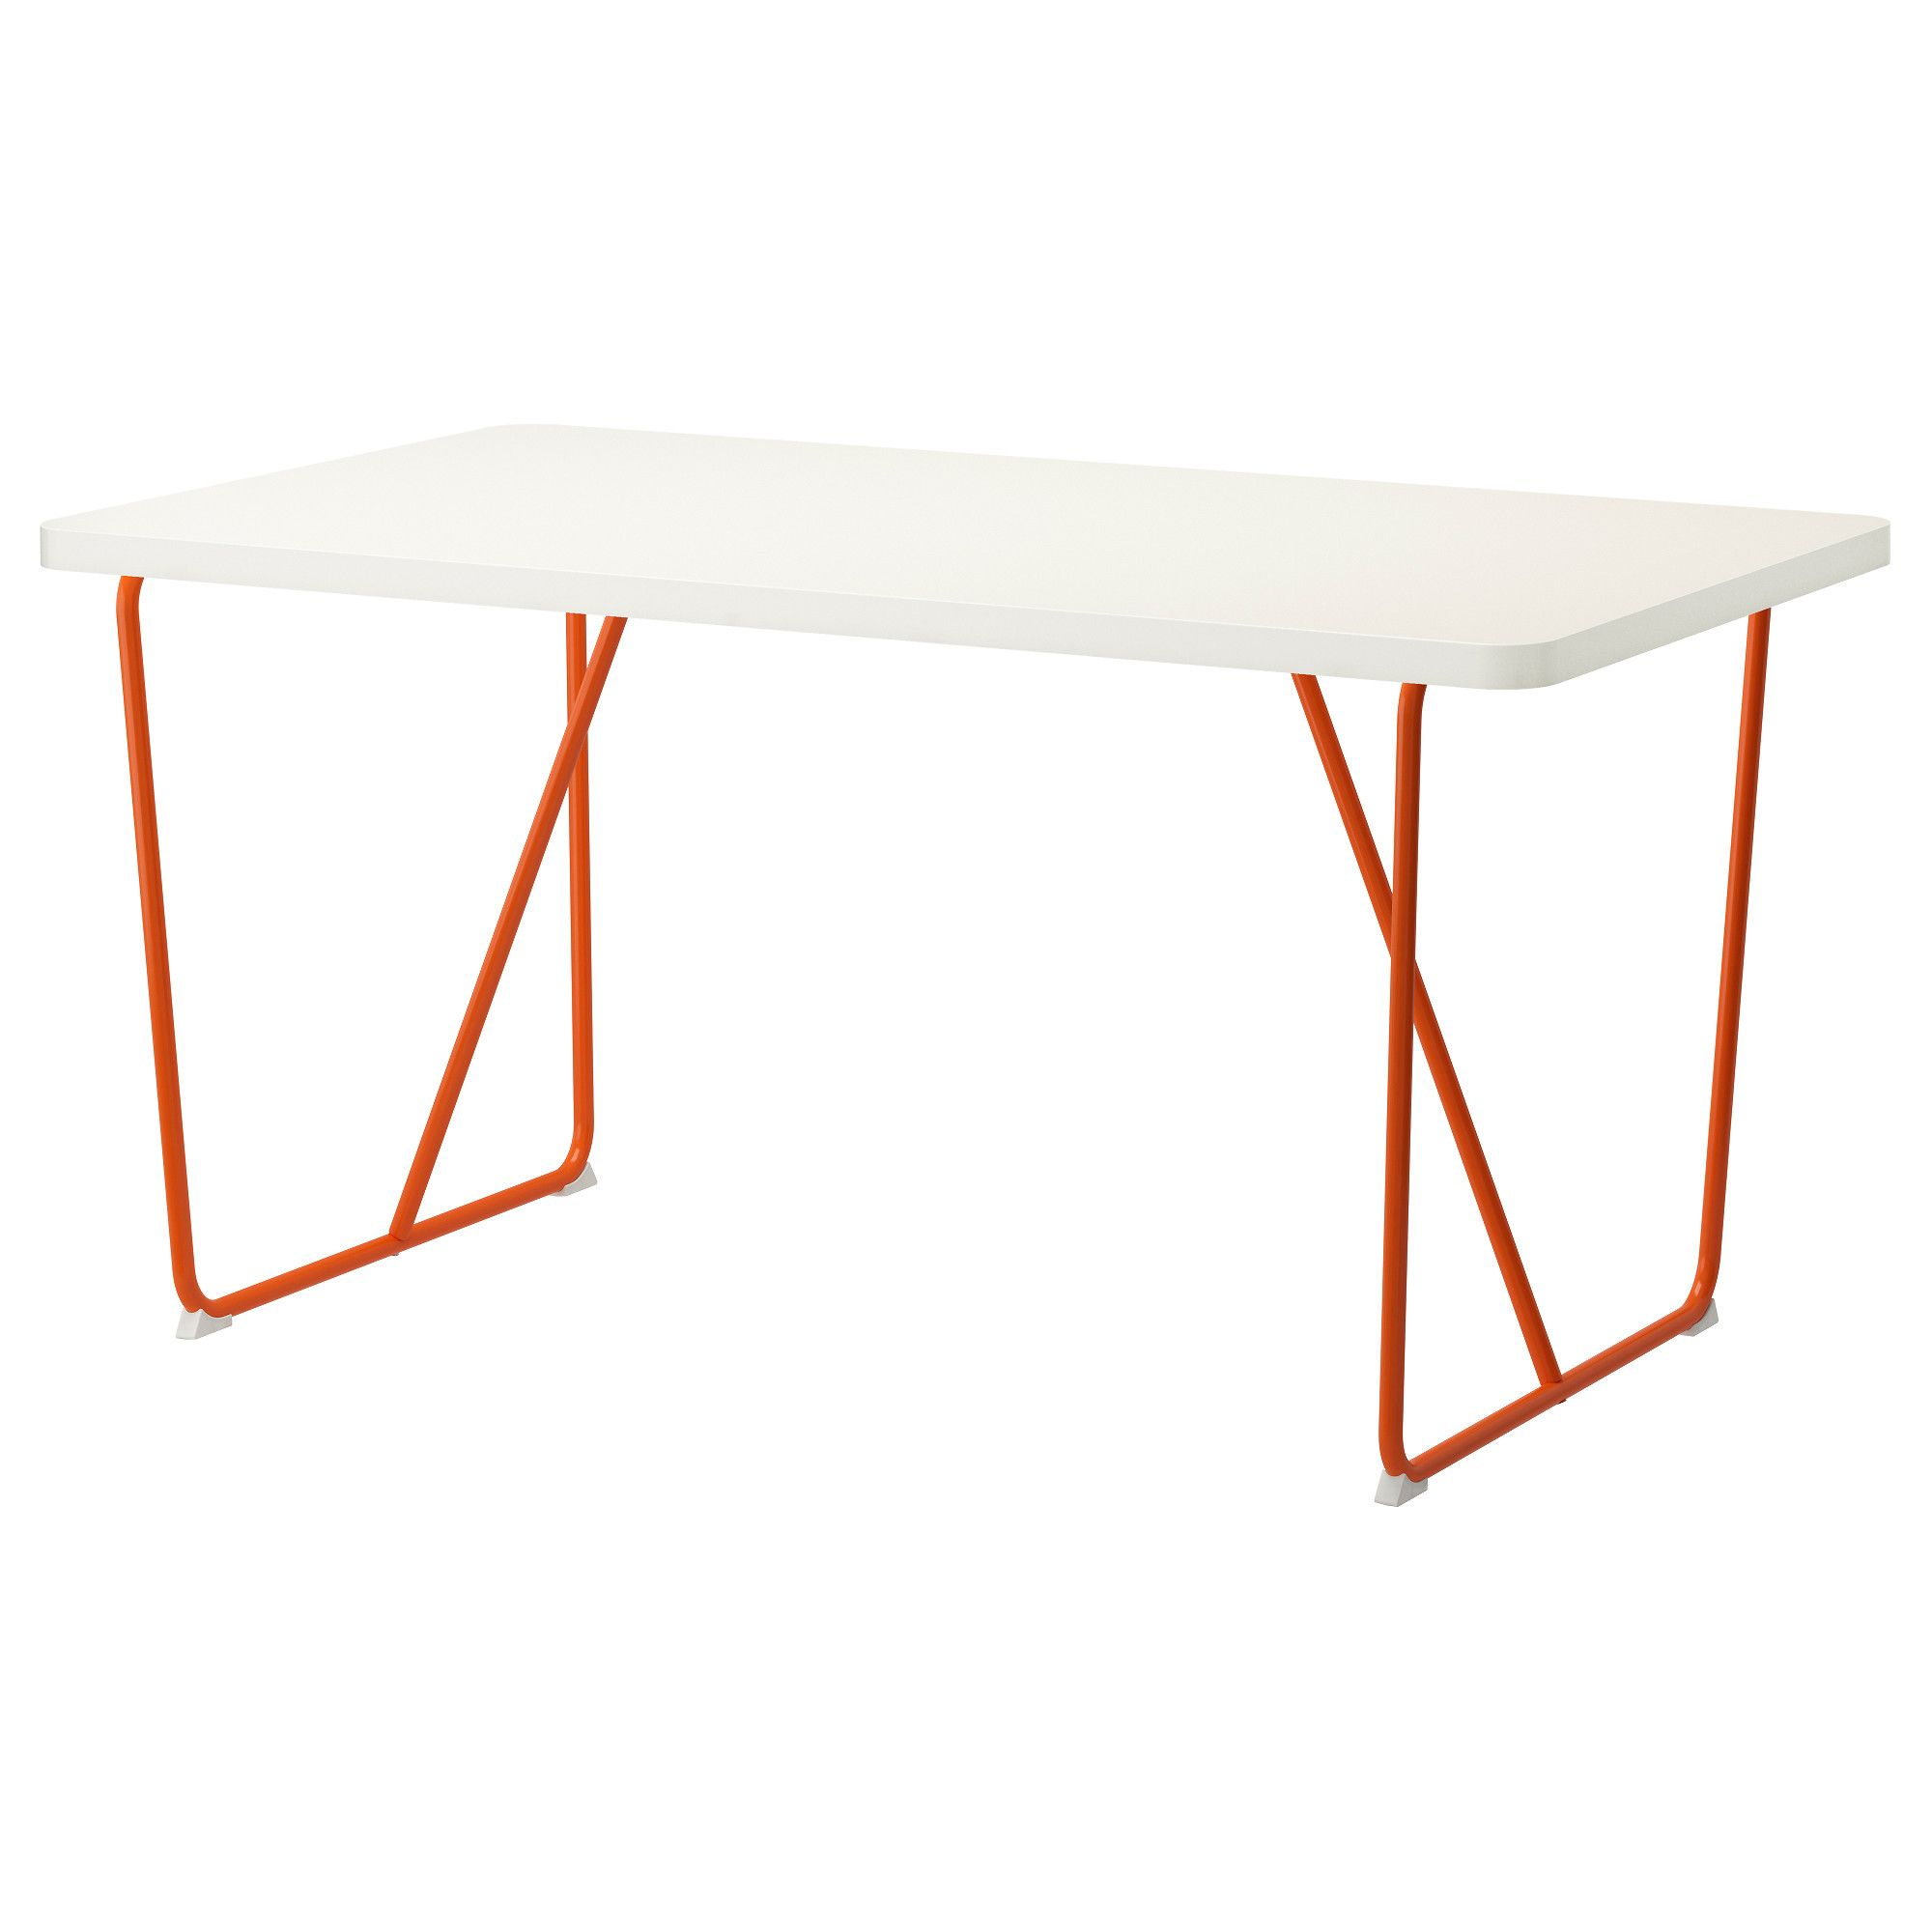 Ikea Küche Orange RydebÄck Table Orange White Backaryd White Orange Ikea